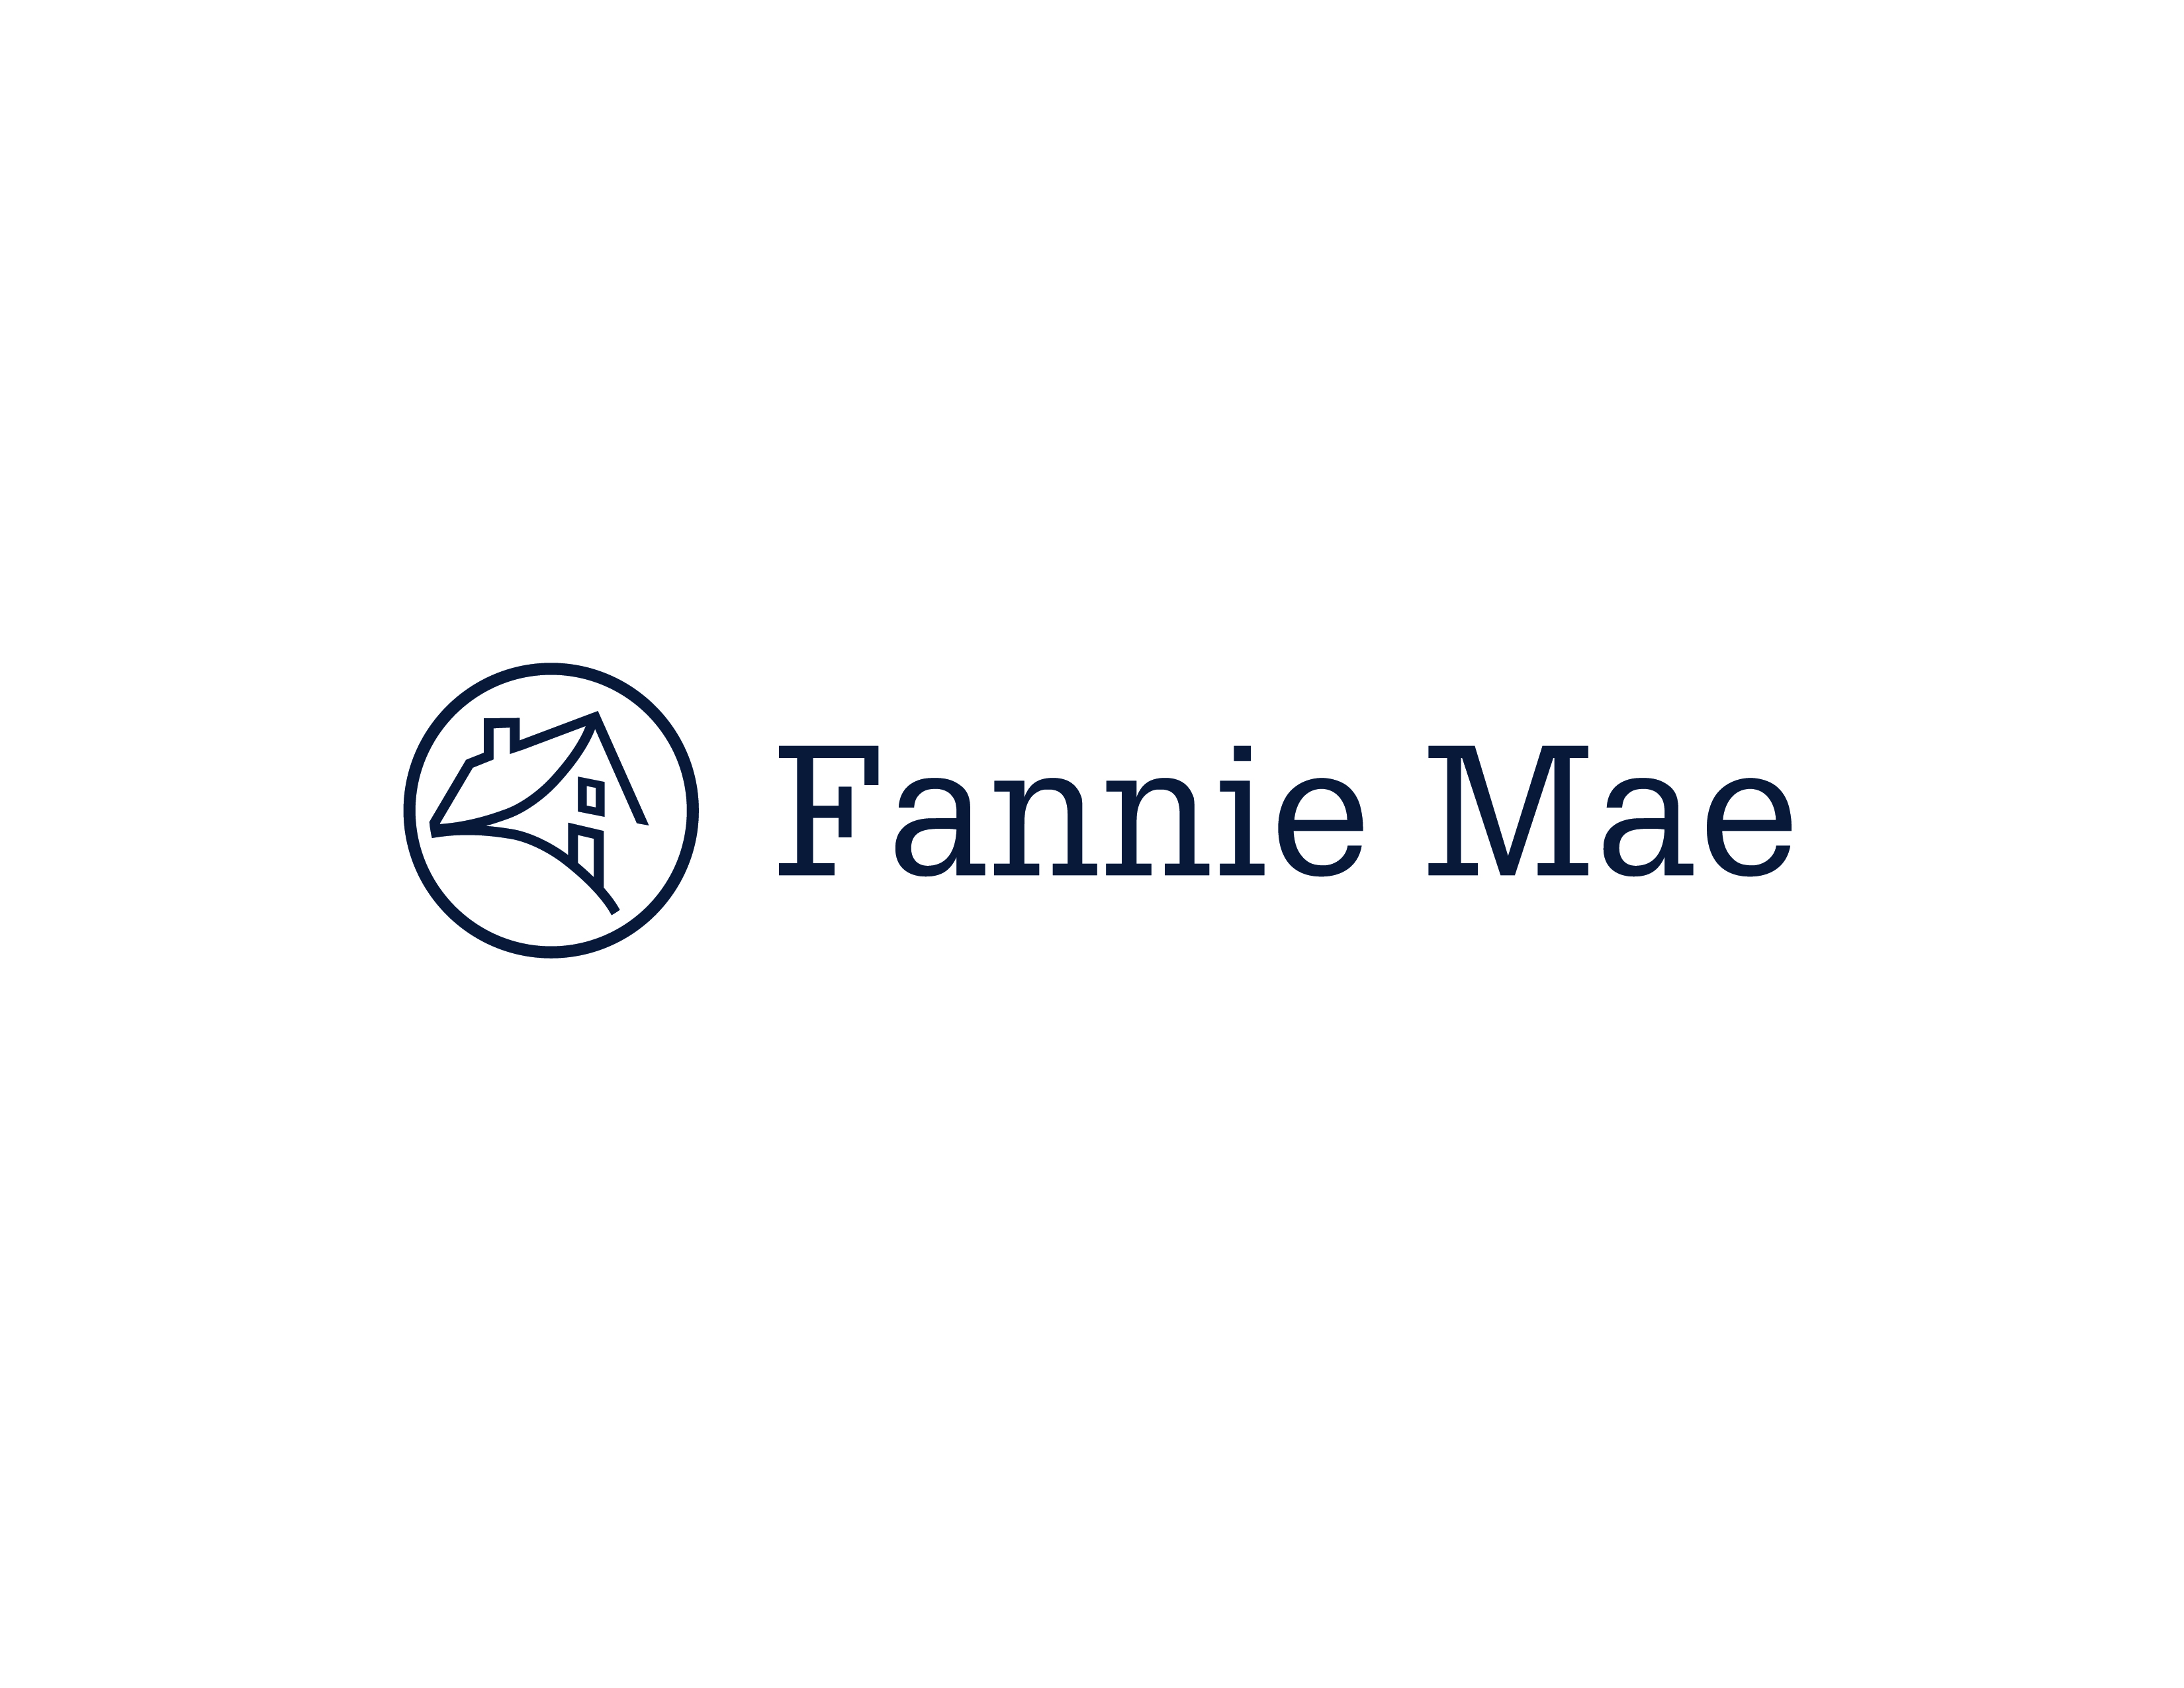 fannie mae The bailout of fannie and freddie saved the housing market, but the two are still under government control now the question is how to get them out.